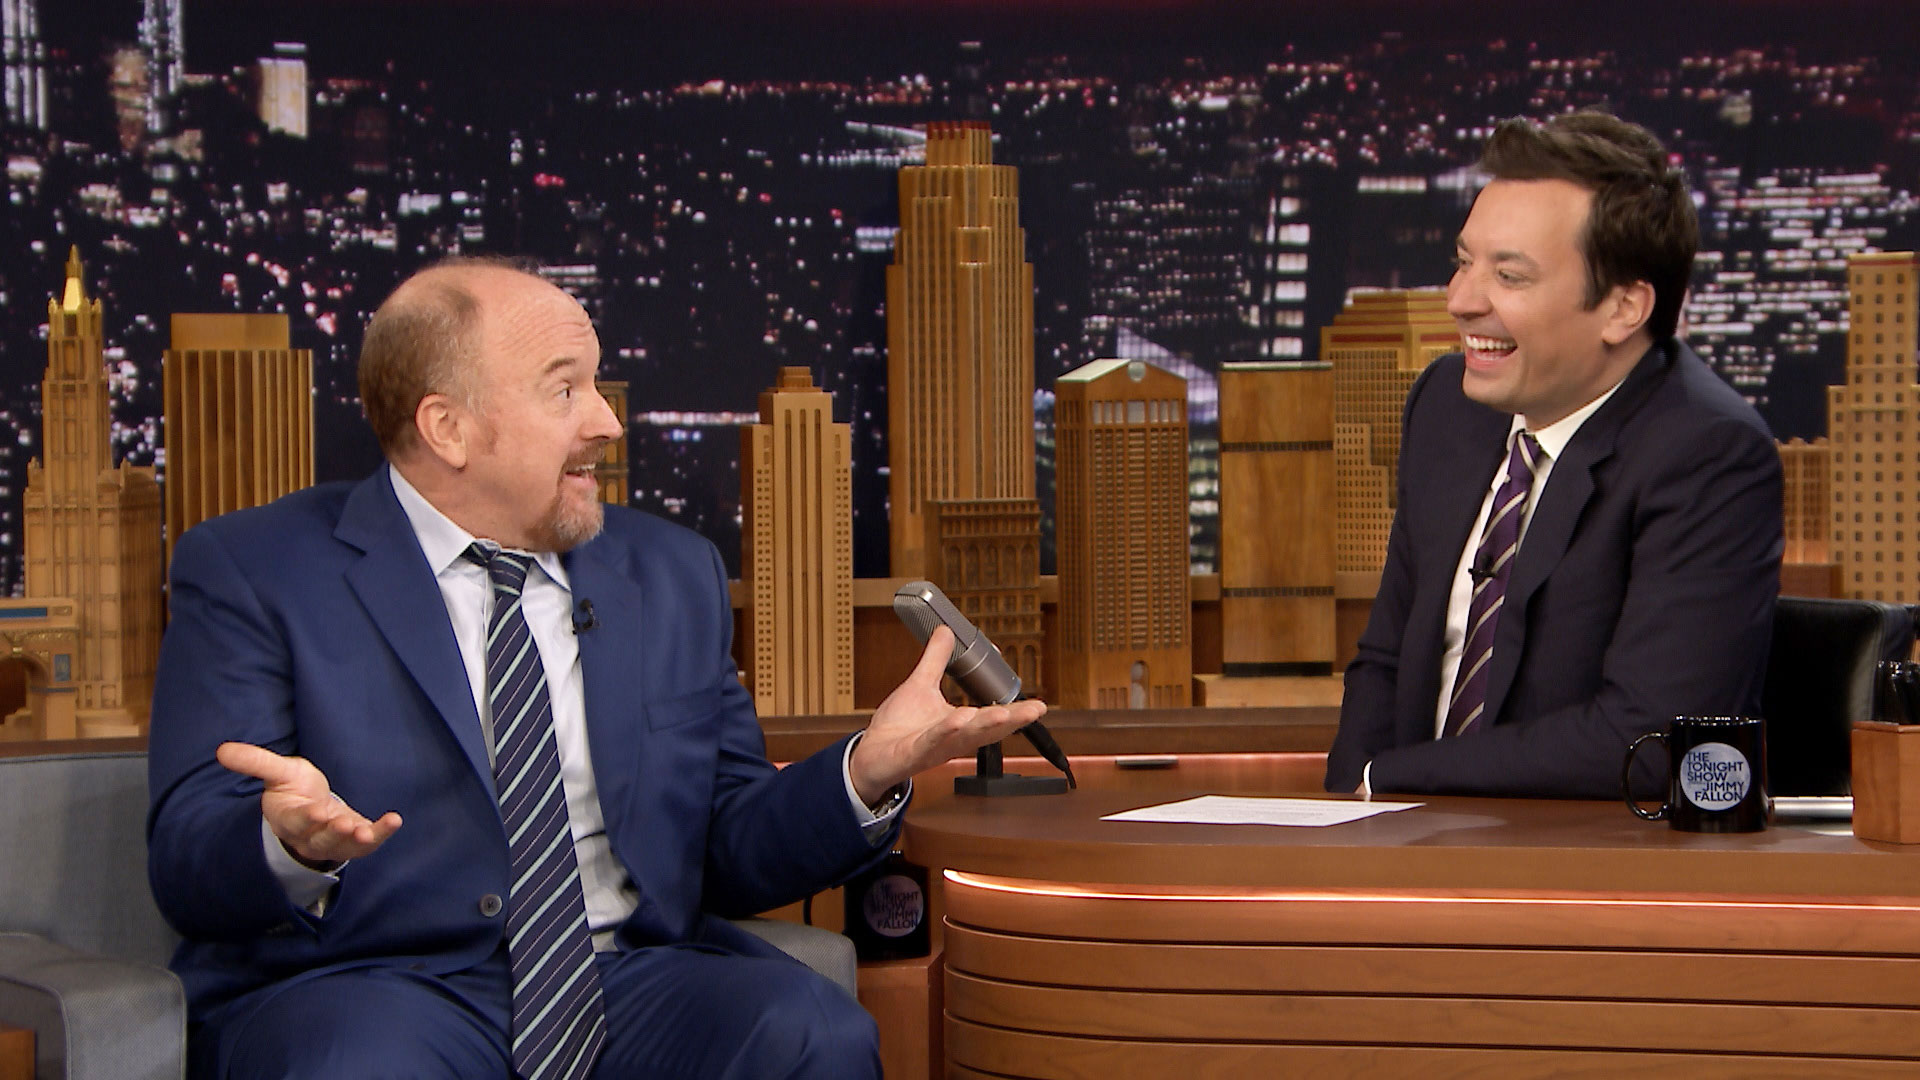 Louis C.K. Says They Should Stop Making Porn